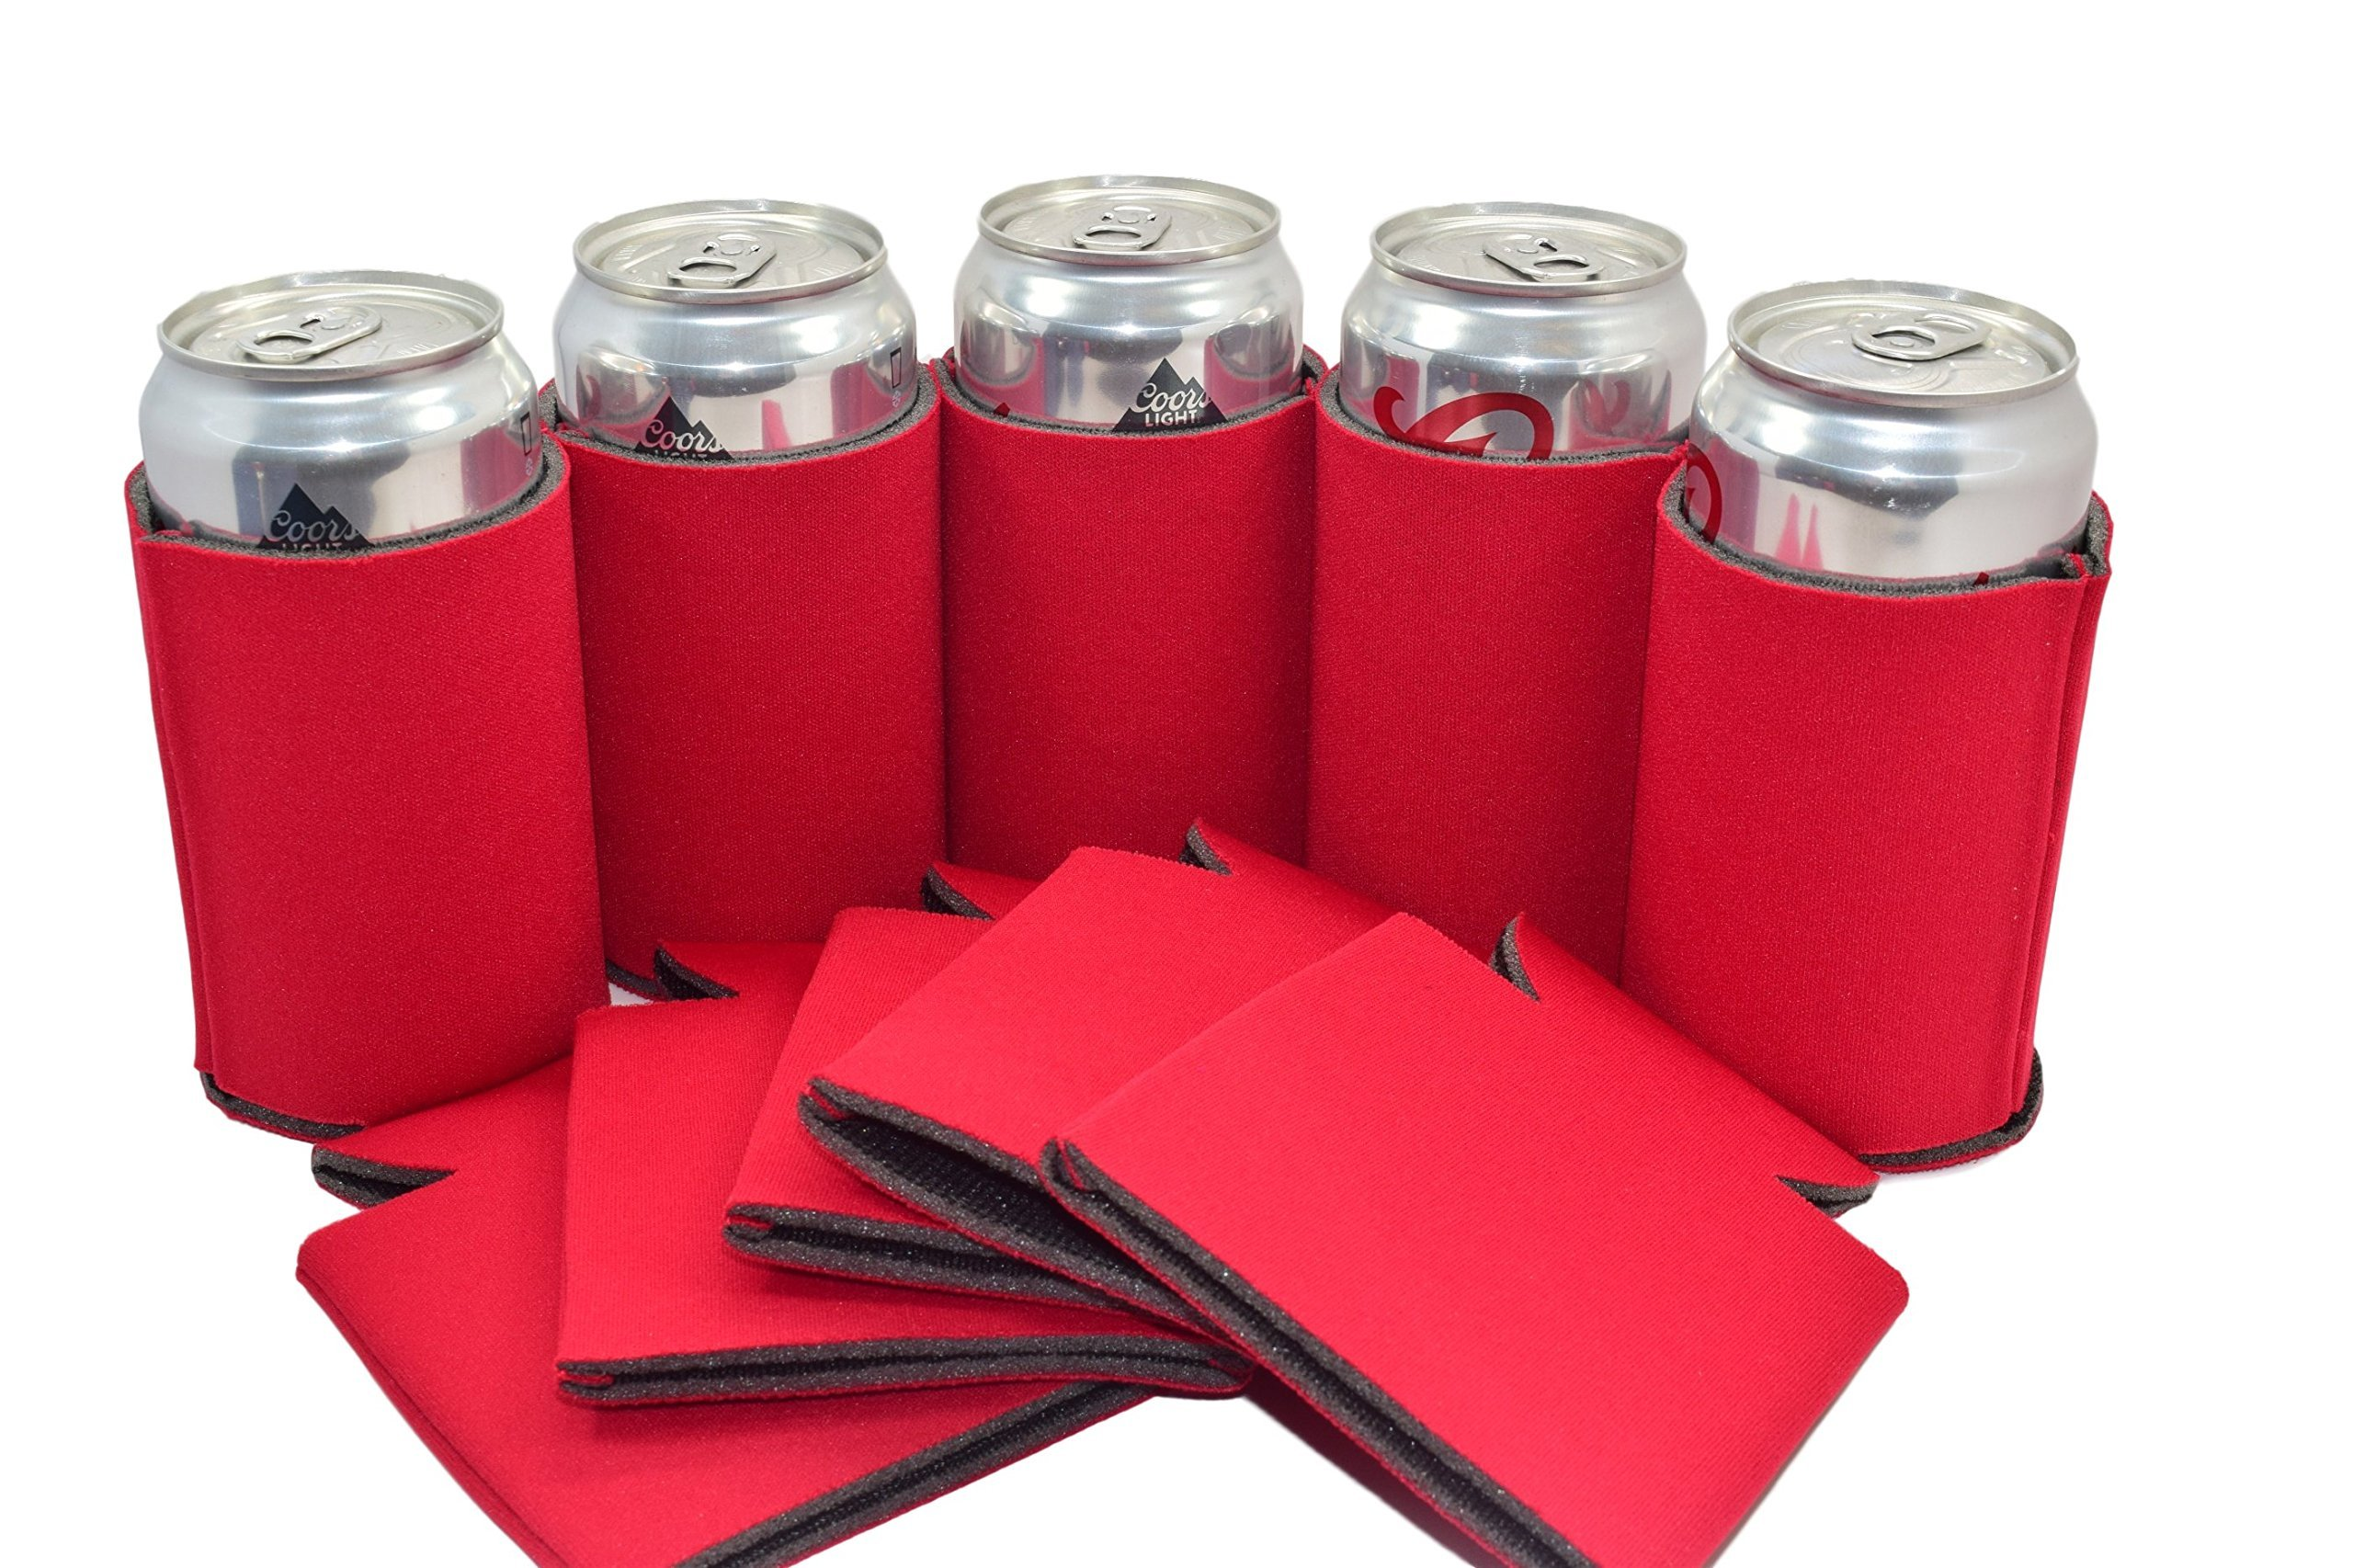 QualityPerfection 25 Red Party Drink Blank Can Coolers(12,25,50,100,200 Bulk Pack) Blank Beer,Soda Coolies Sleeves | Soft,Insulated Coolers | 30 Colors | Perfect For DIY Projects,Holidays,Events